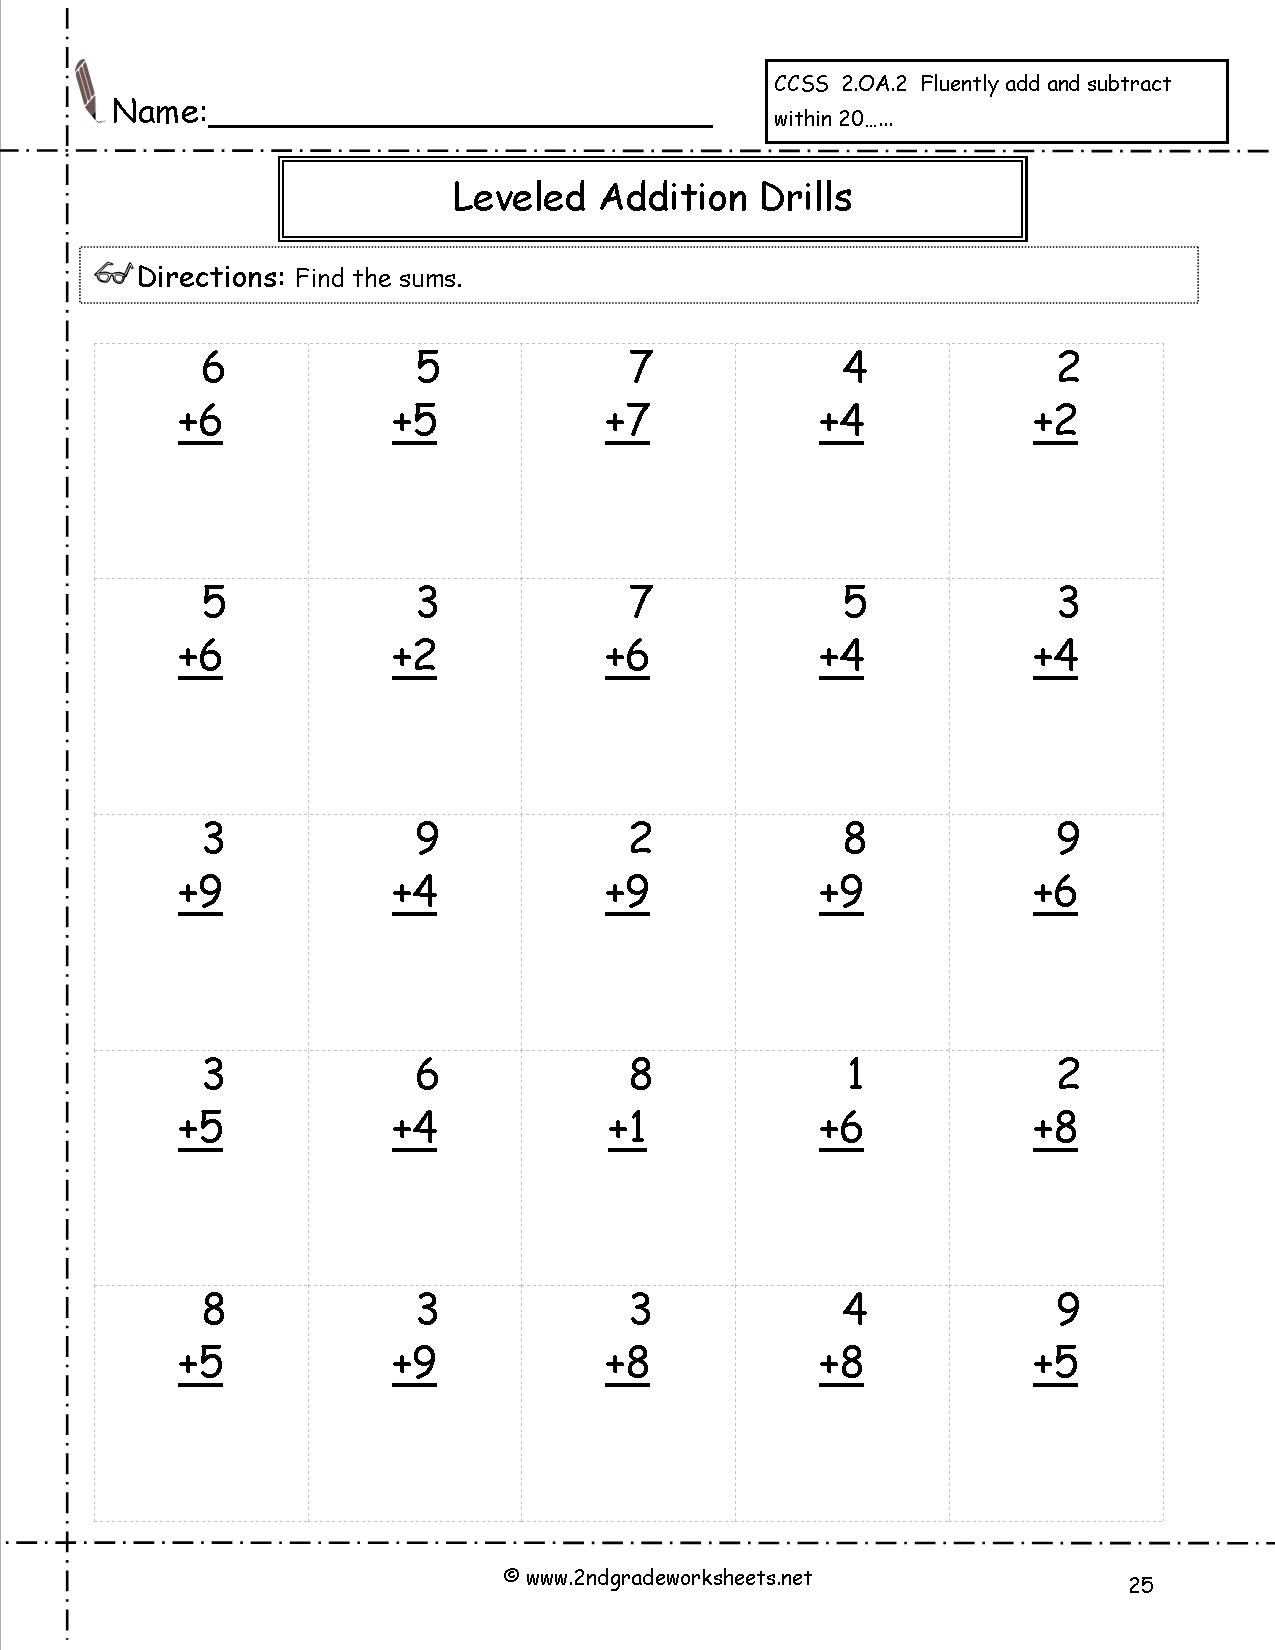 Free Math Worksheets And Printouts - Free Printable Subtraction Worksheets For 2Nd Grade